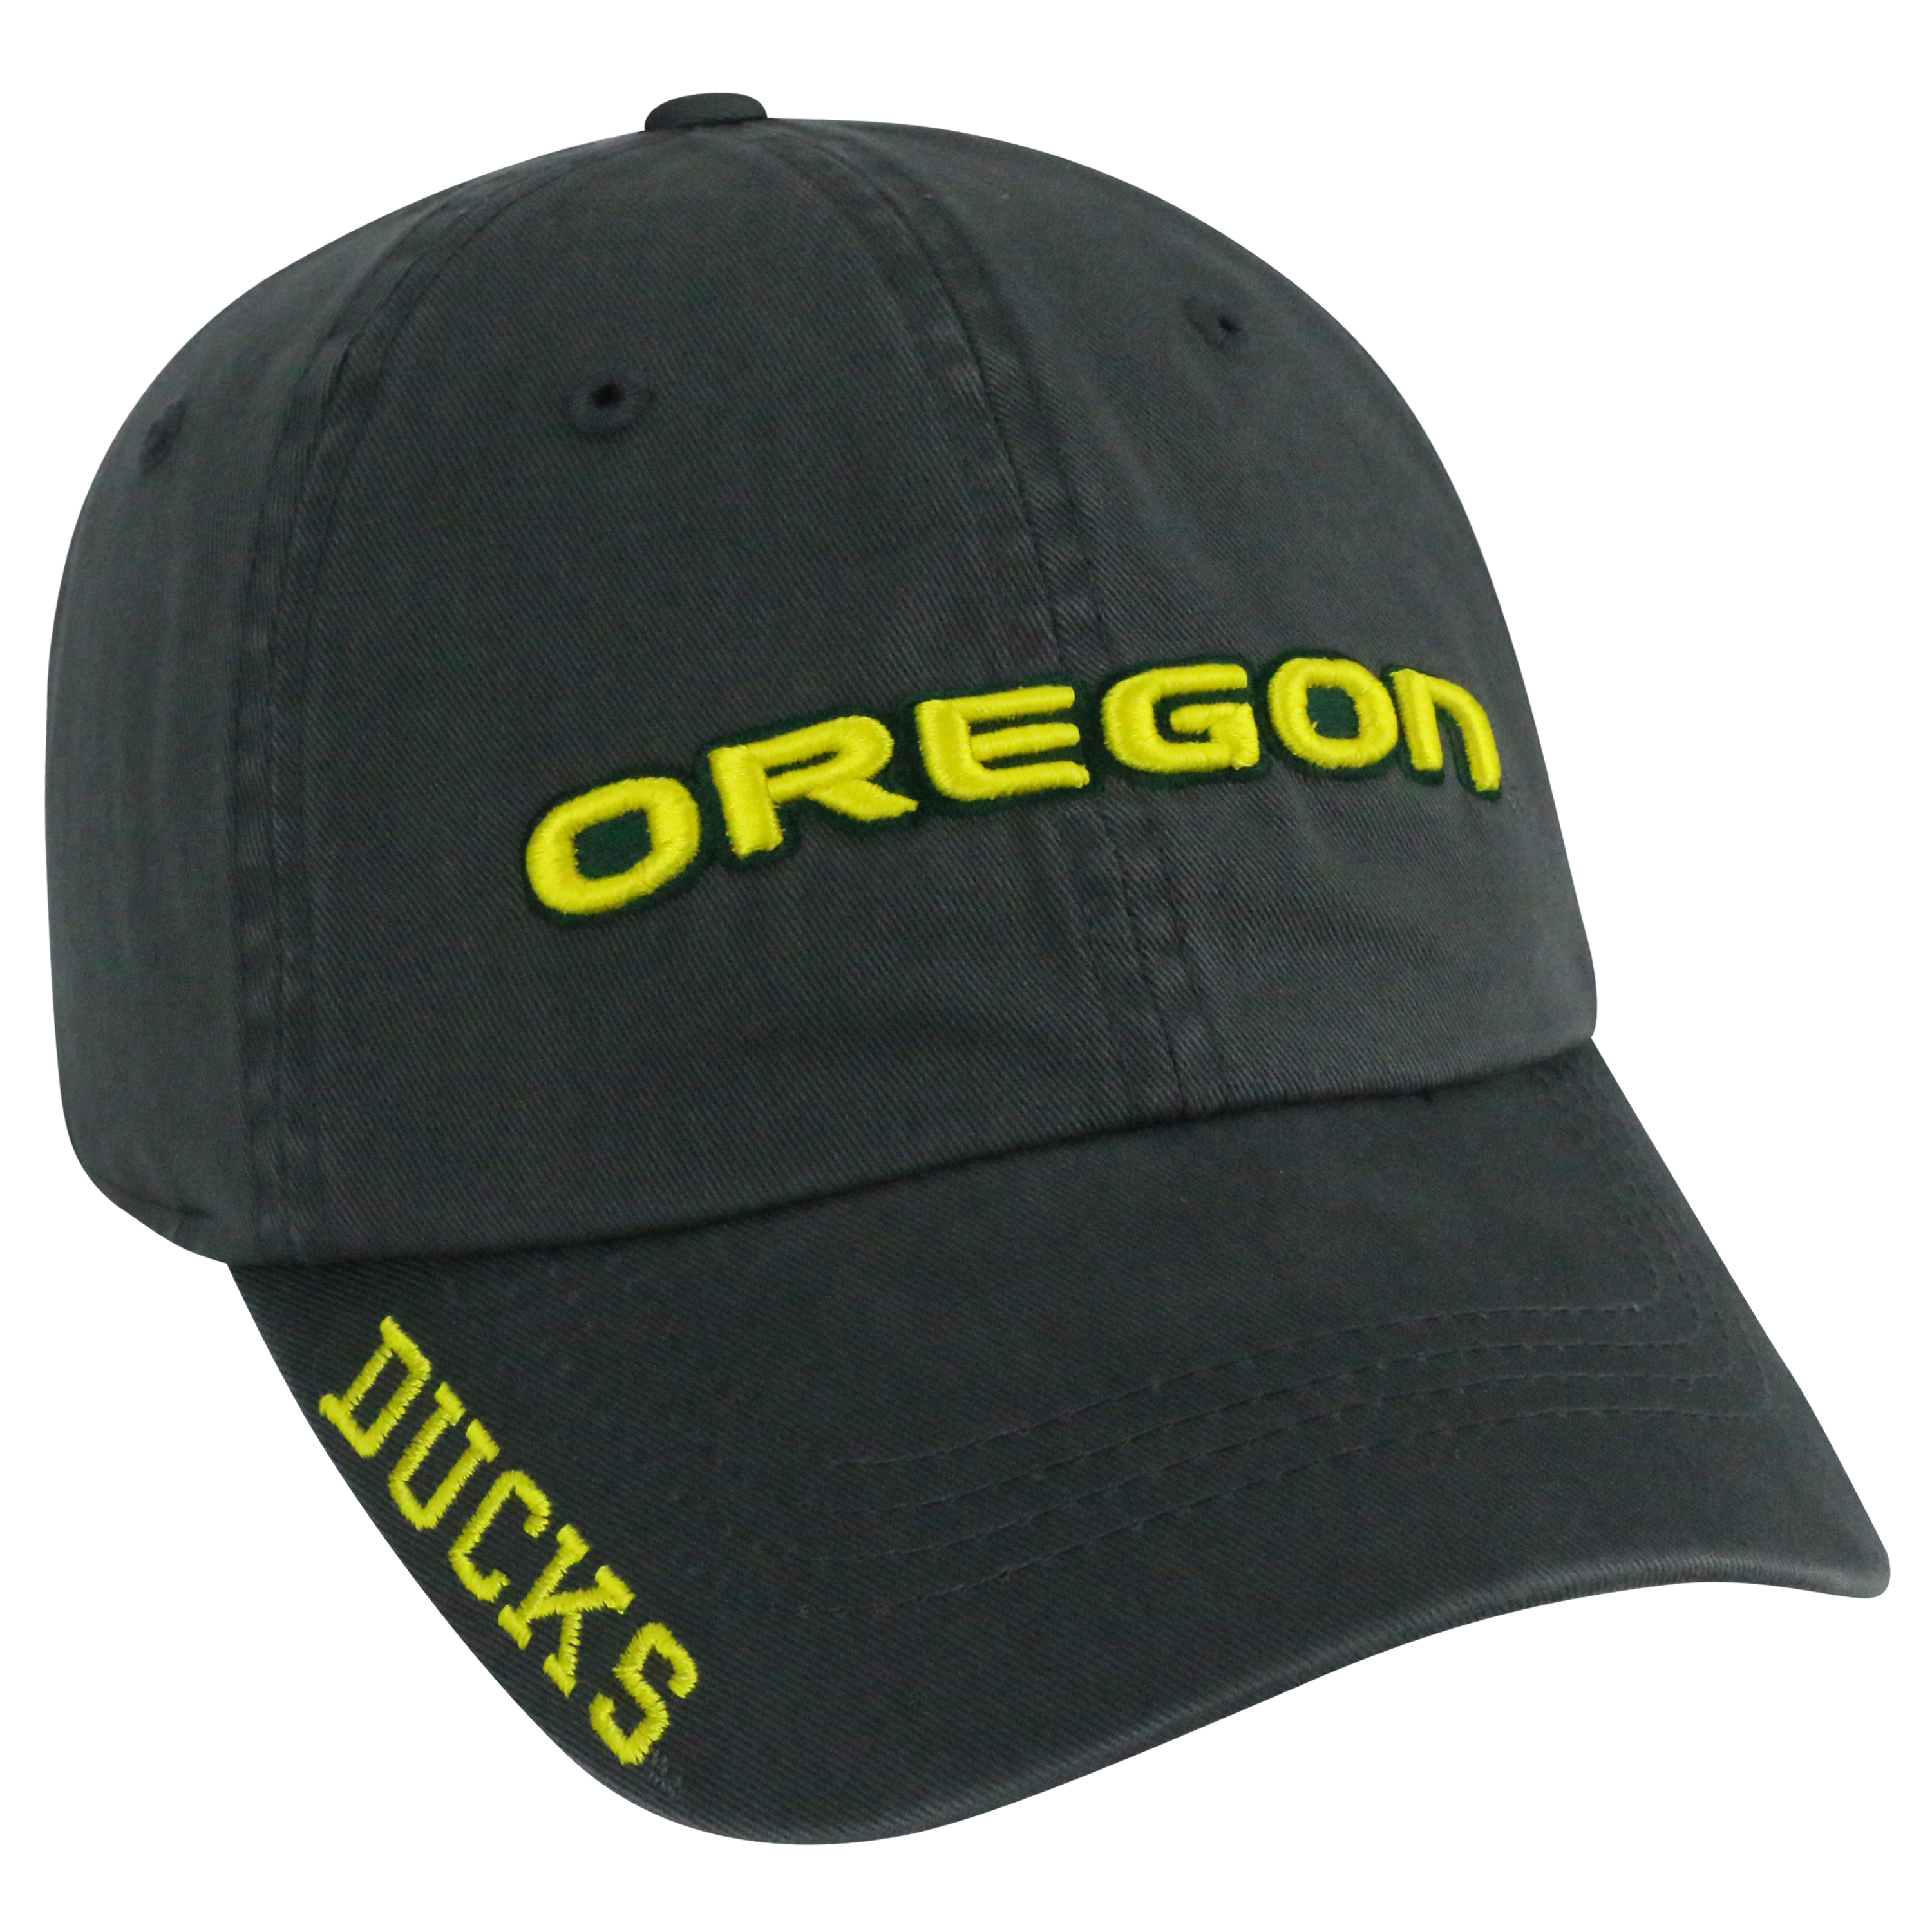 Oregon Ducks Charcoal Washed